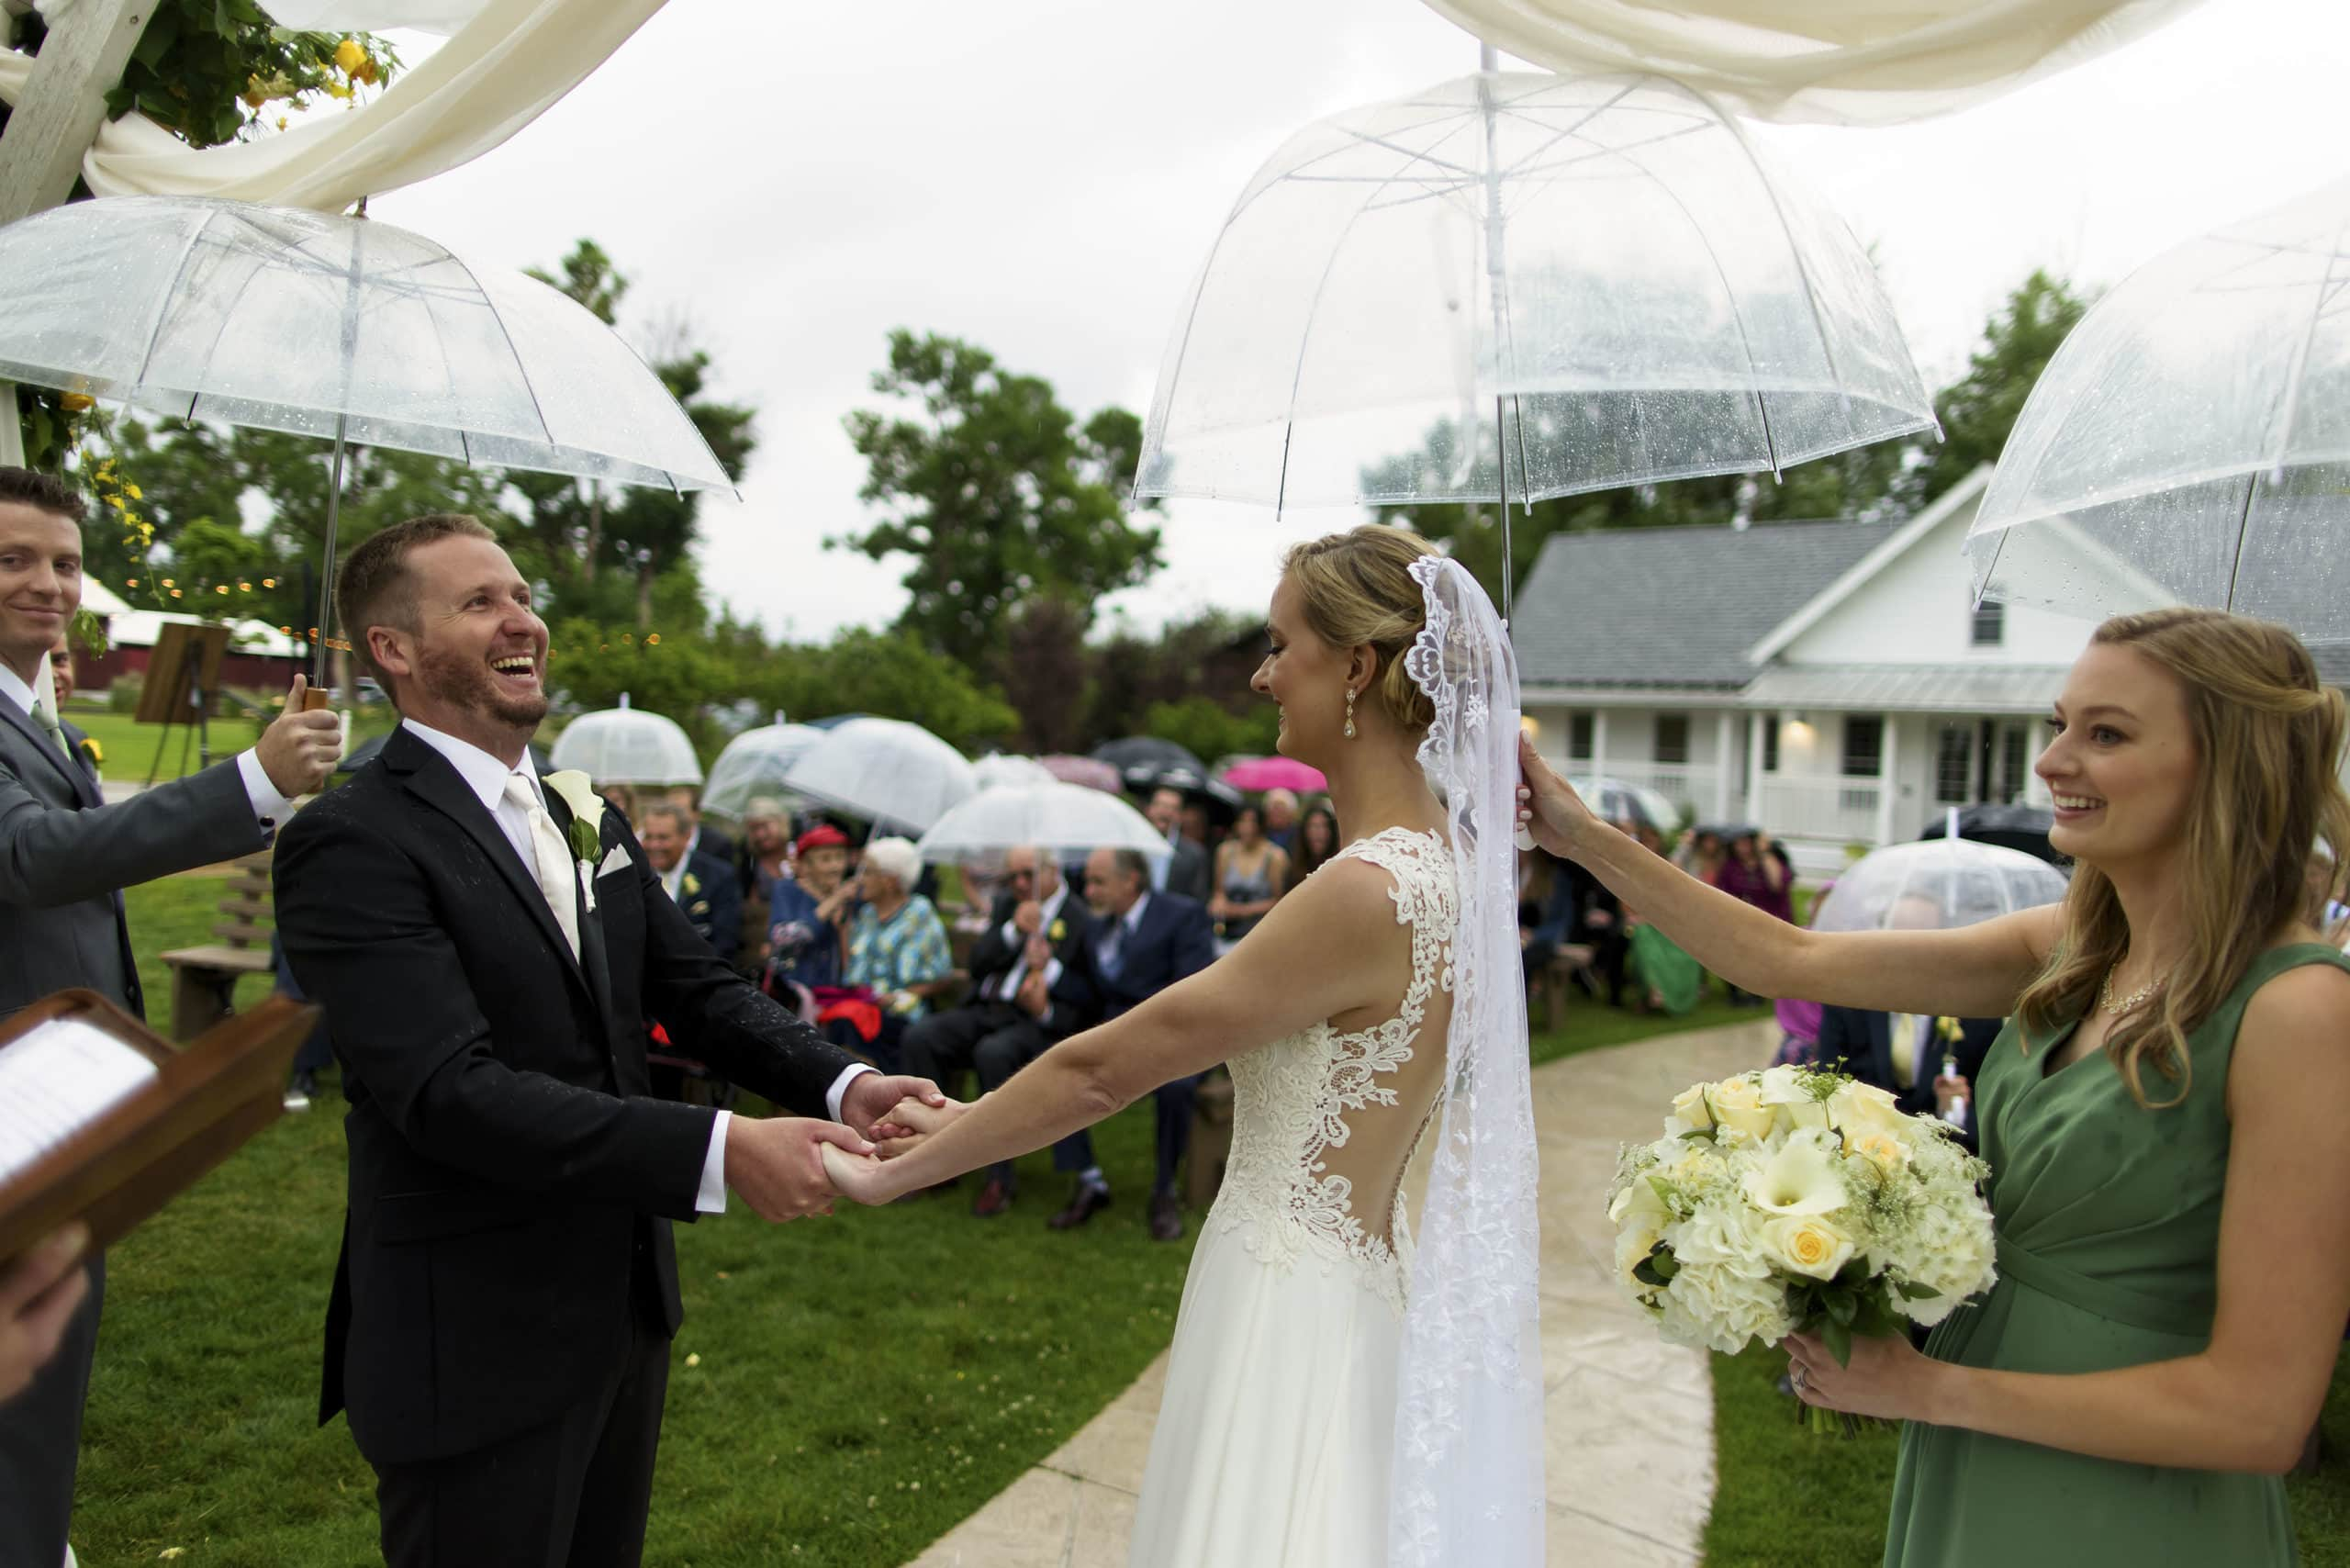 The couple react as umbrellas shield them as rain begins to fall during the ceremony